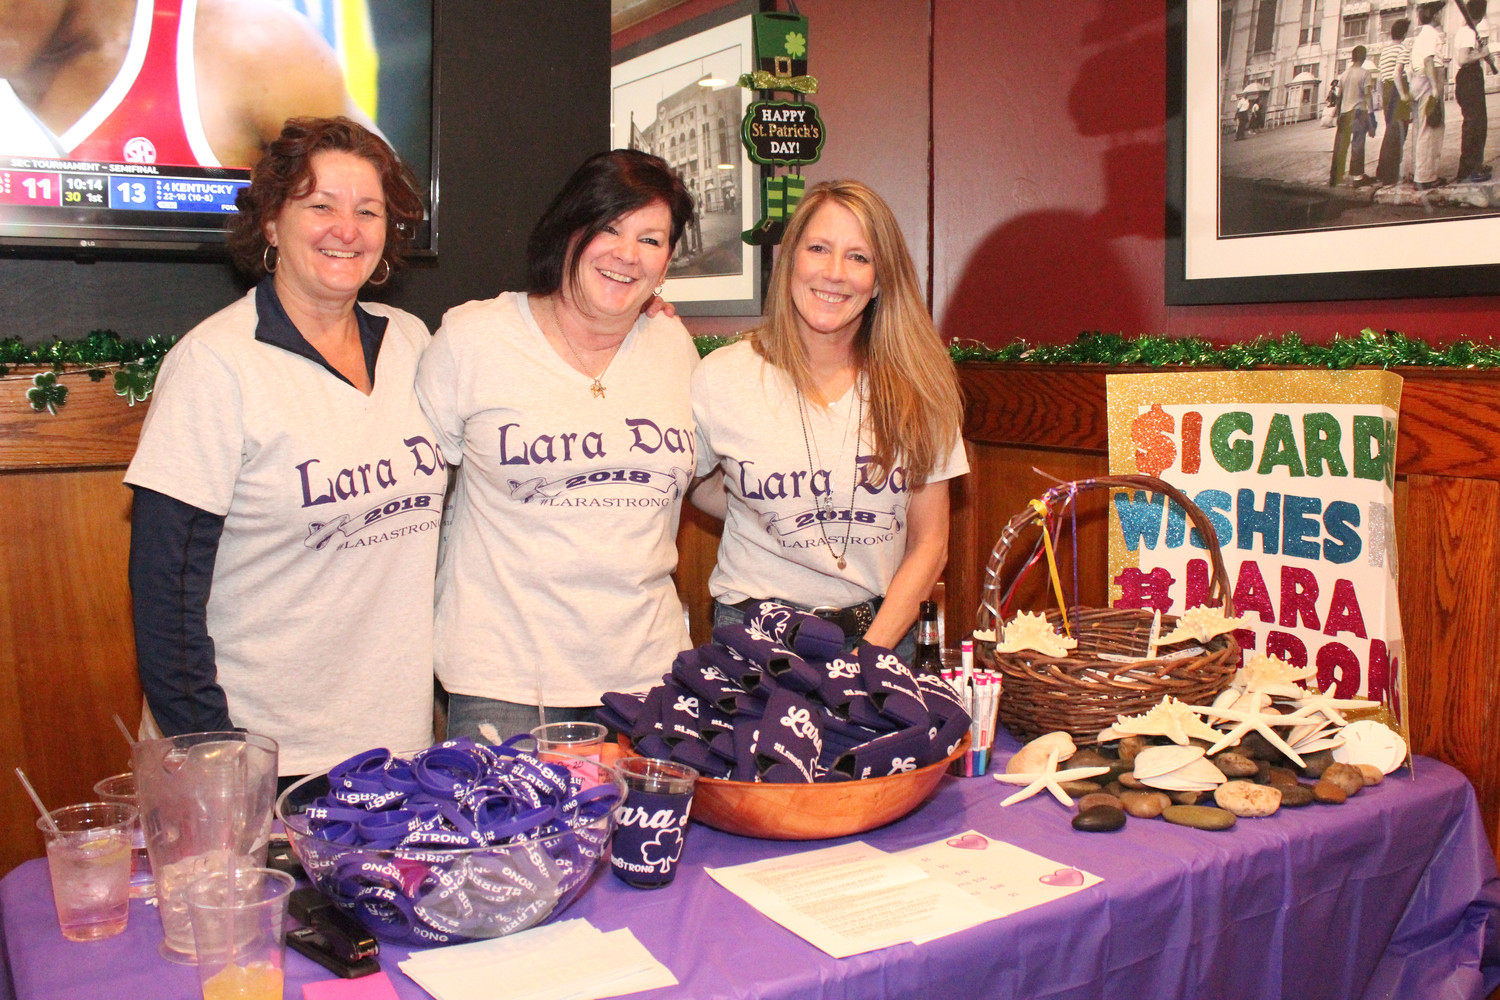 Keeping track of the many raffle baskets were Jodi Ficarra, left, Peggy Melito, and Shae Santamaria.